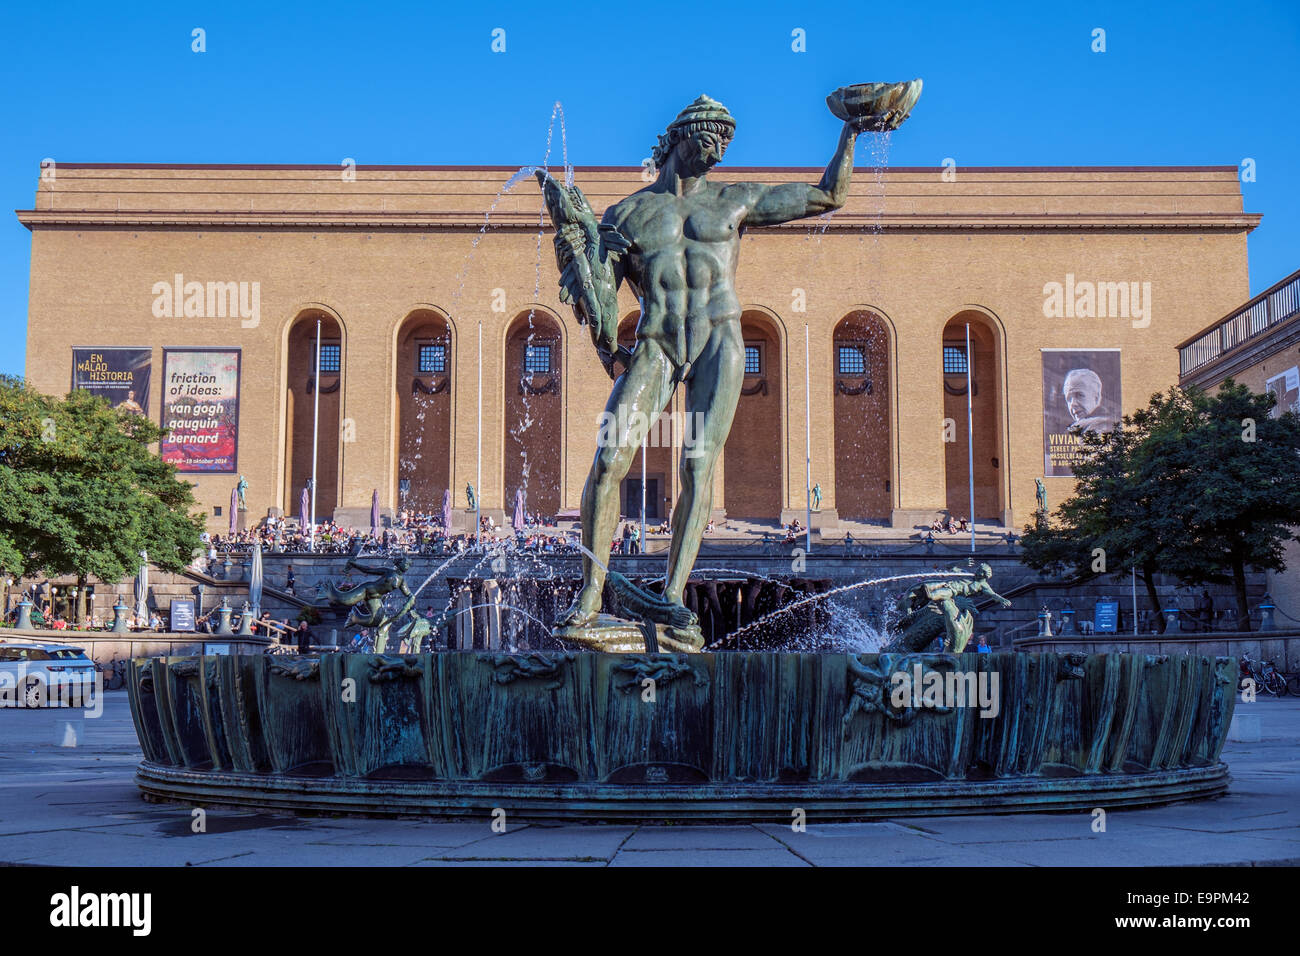 The iconic statue Poseidon by Carl Milles in front of Gothenburg art museum. - Stock Image